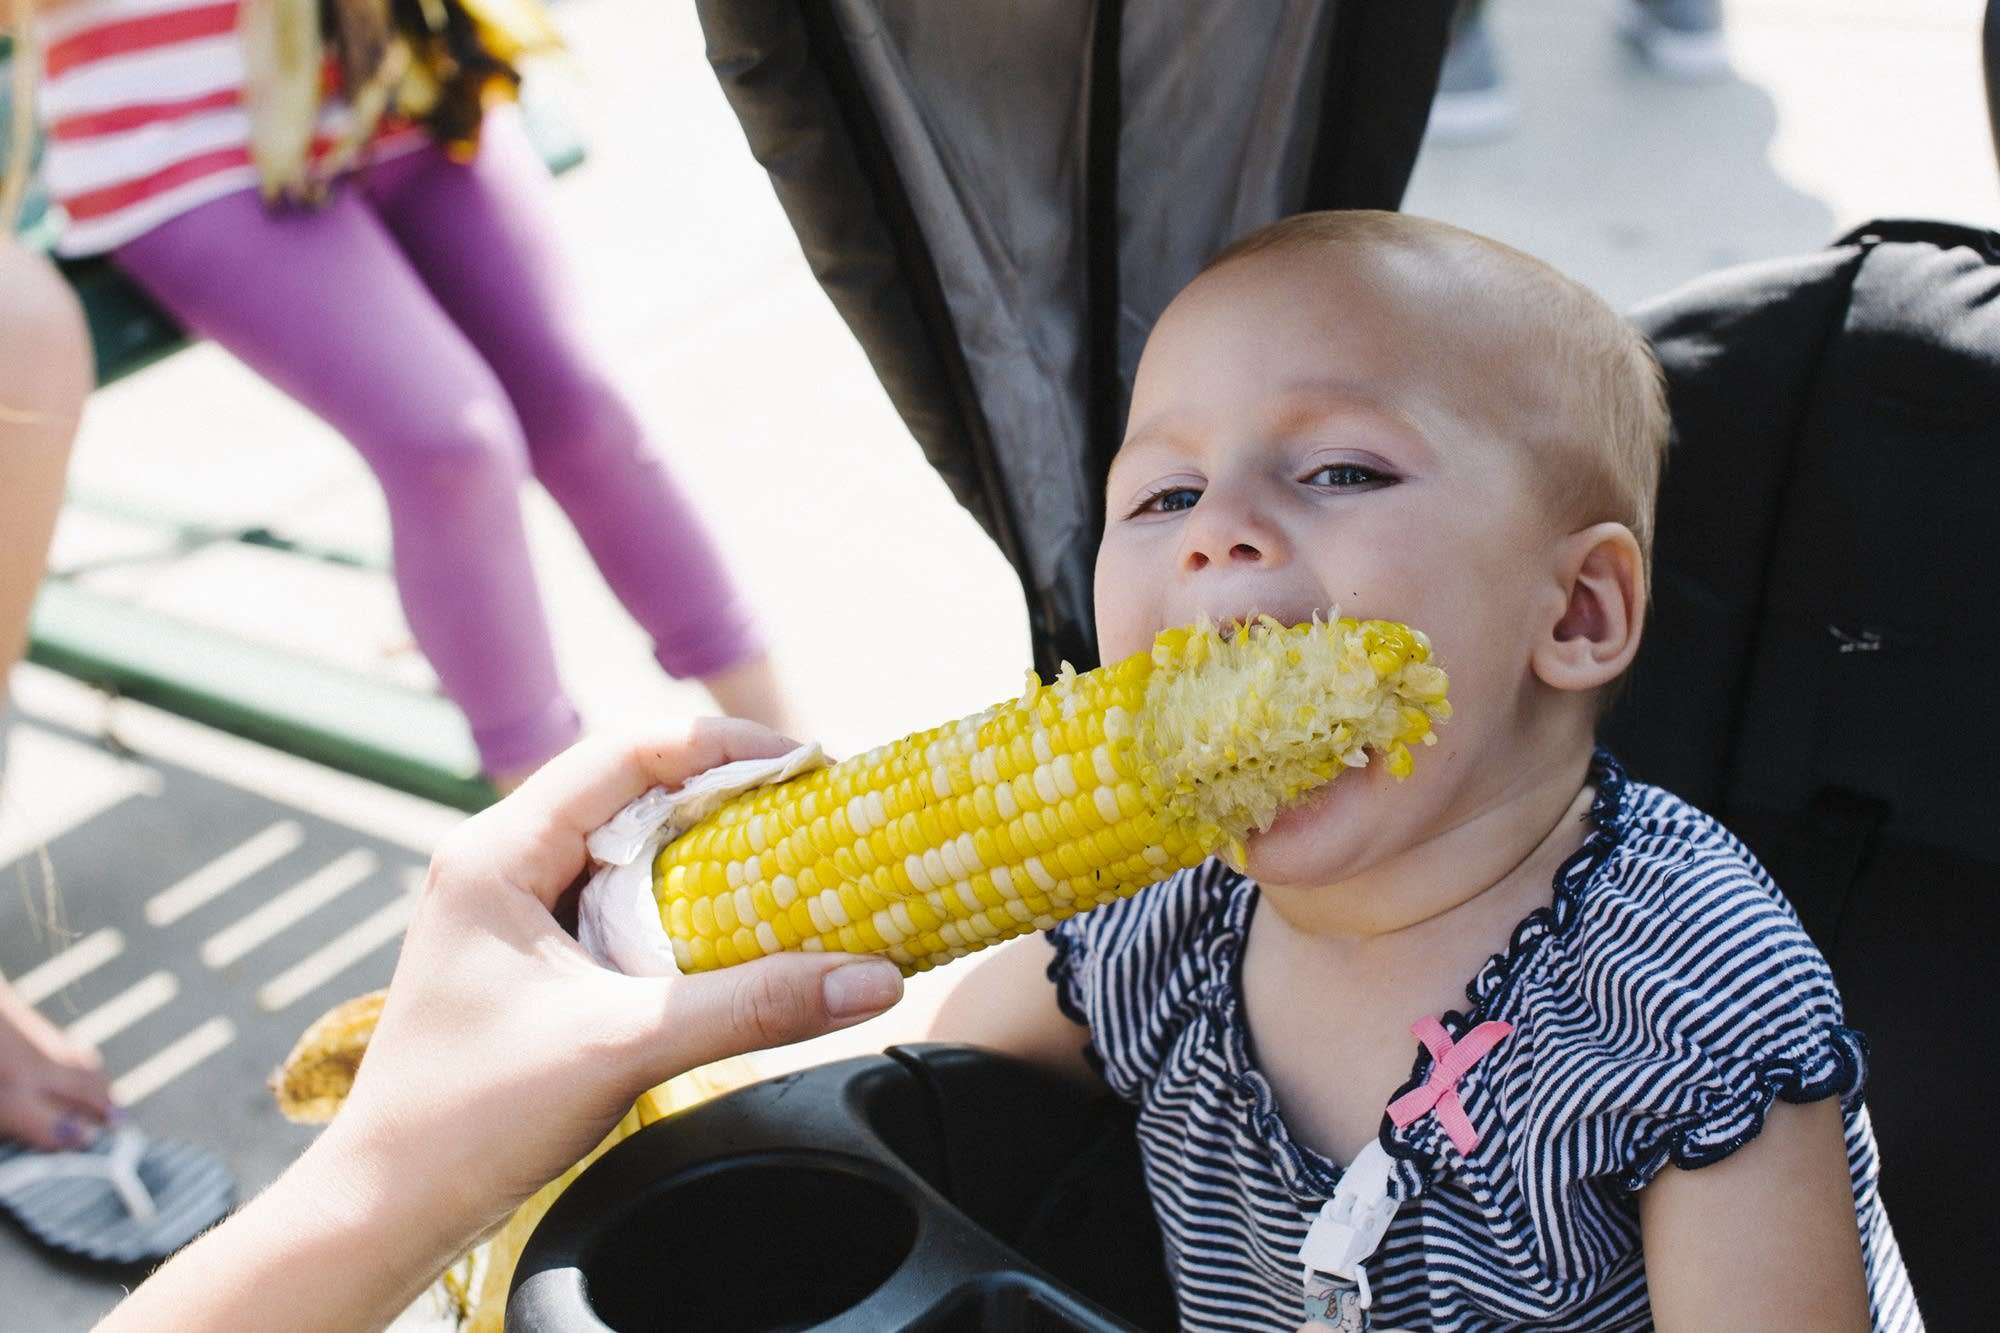 Fourteen-month-old Zola uses all 4 of her teeth to eat an ear of corn.